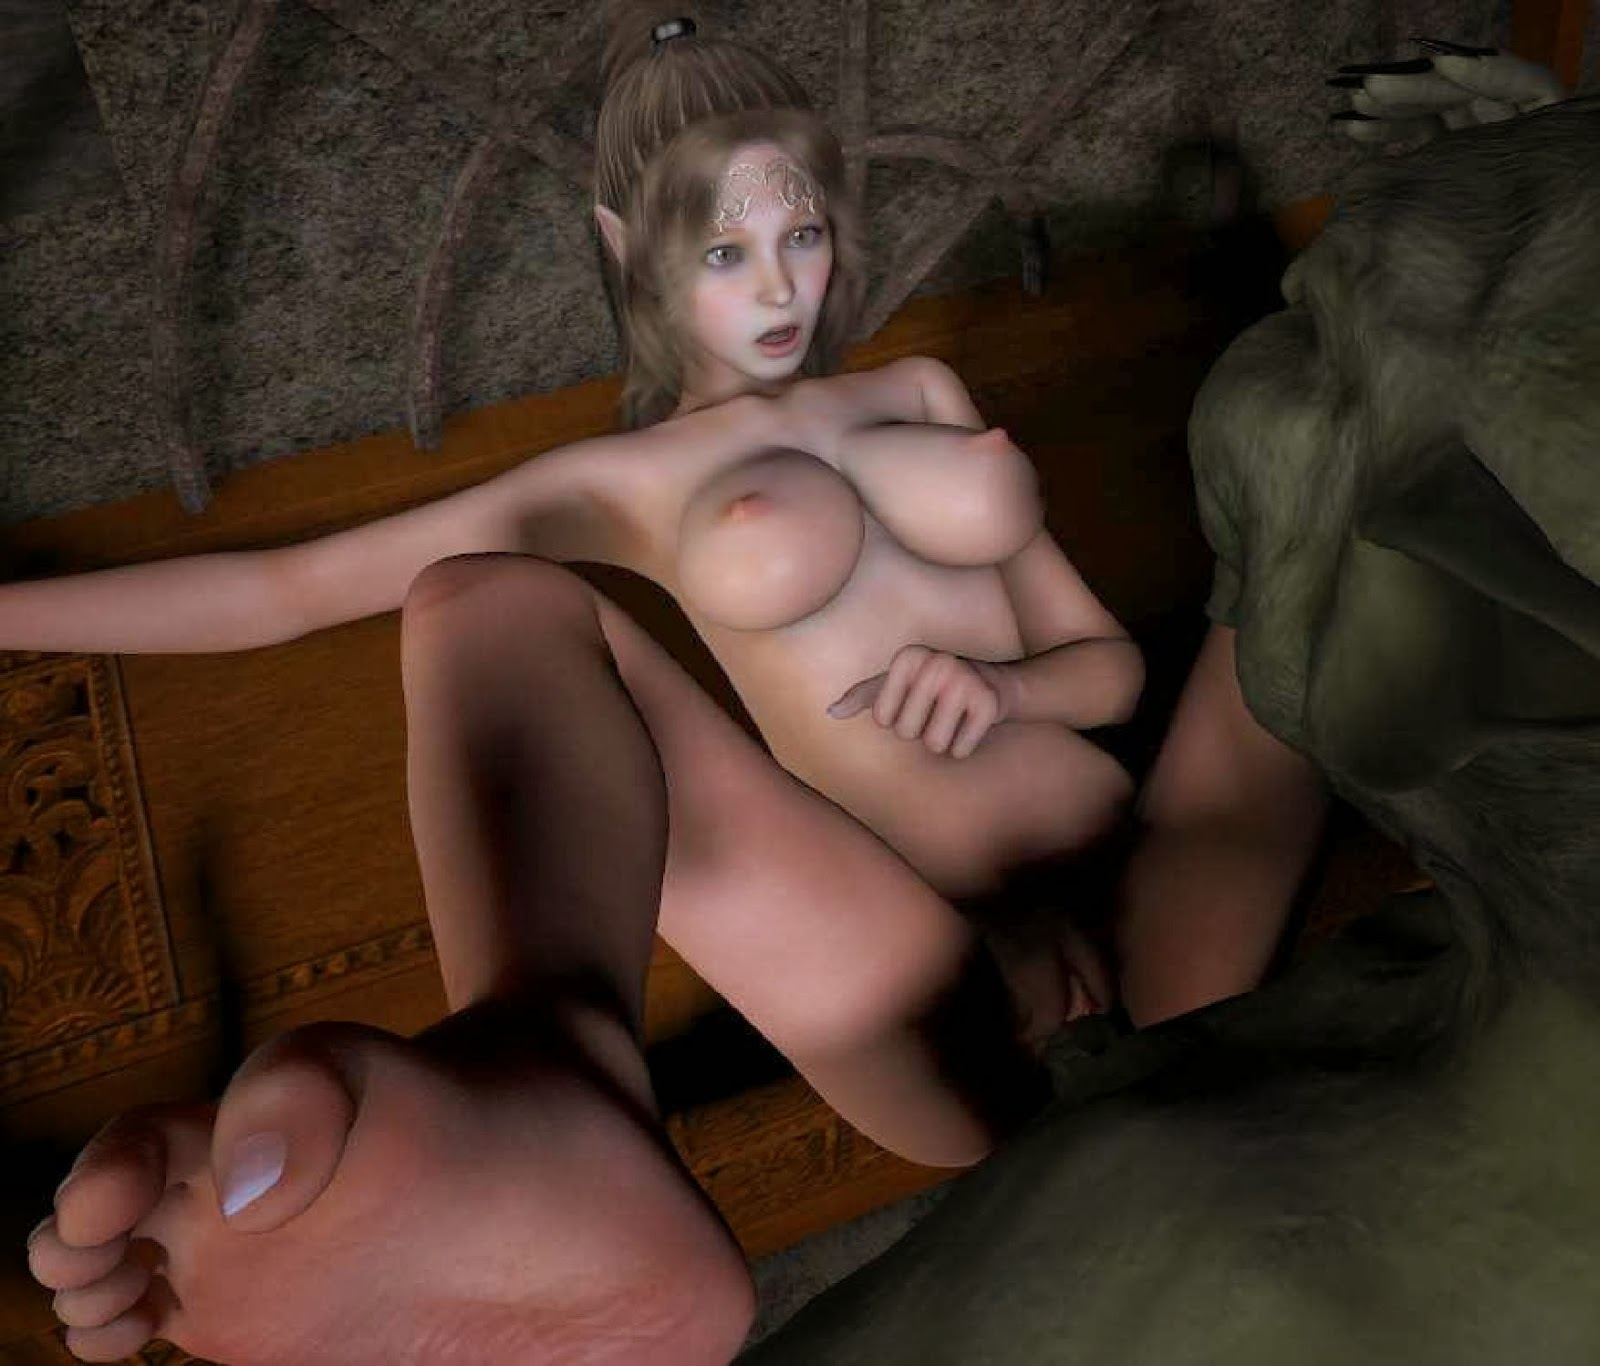 Elf girl forced sex exploited image